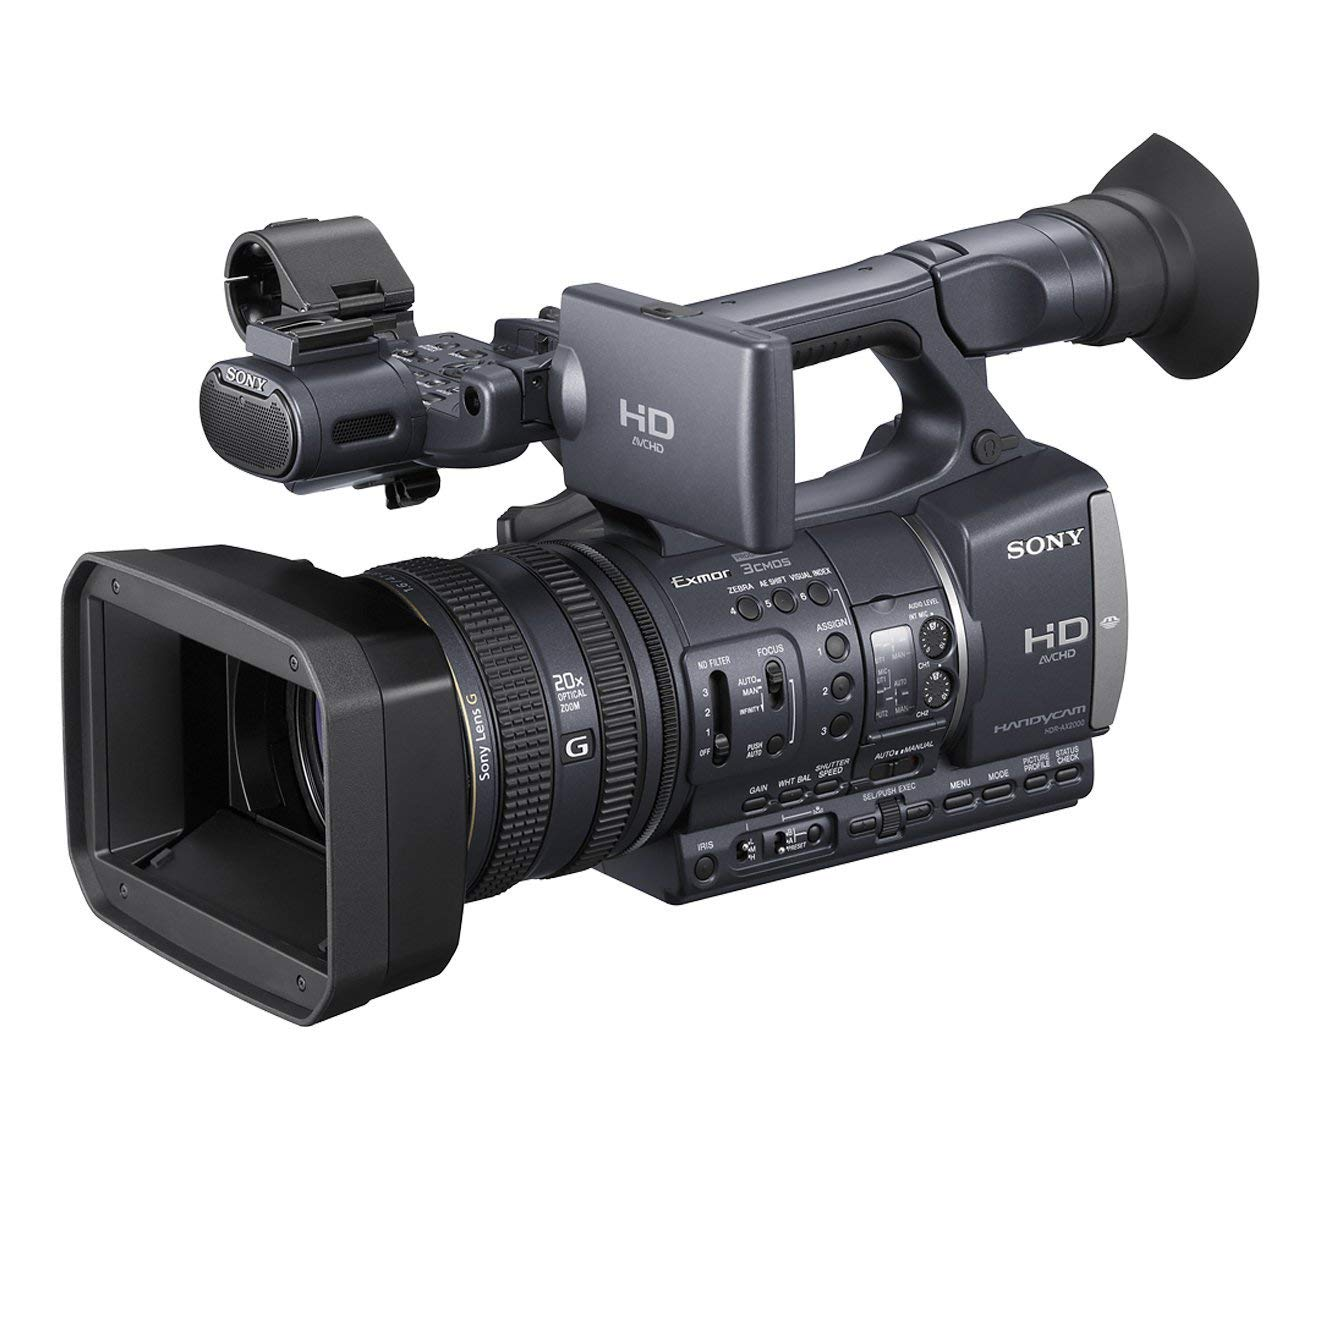 "Sony HDRAX2000EH - Videocámara profesional (1.12 Mp, pantalla de 3.2"", zoom óptico 20x, estabilizador), negro"